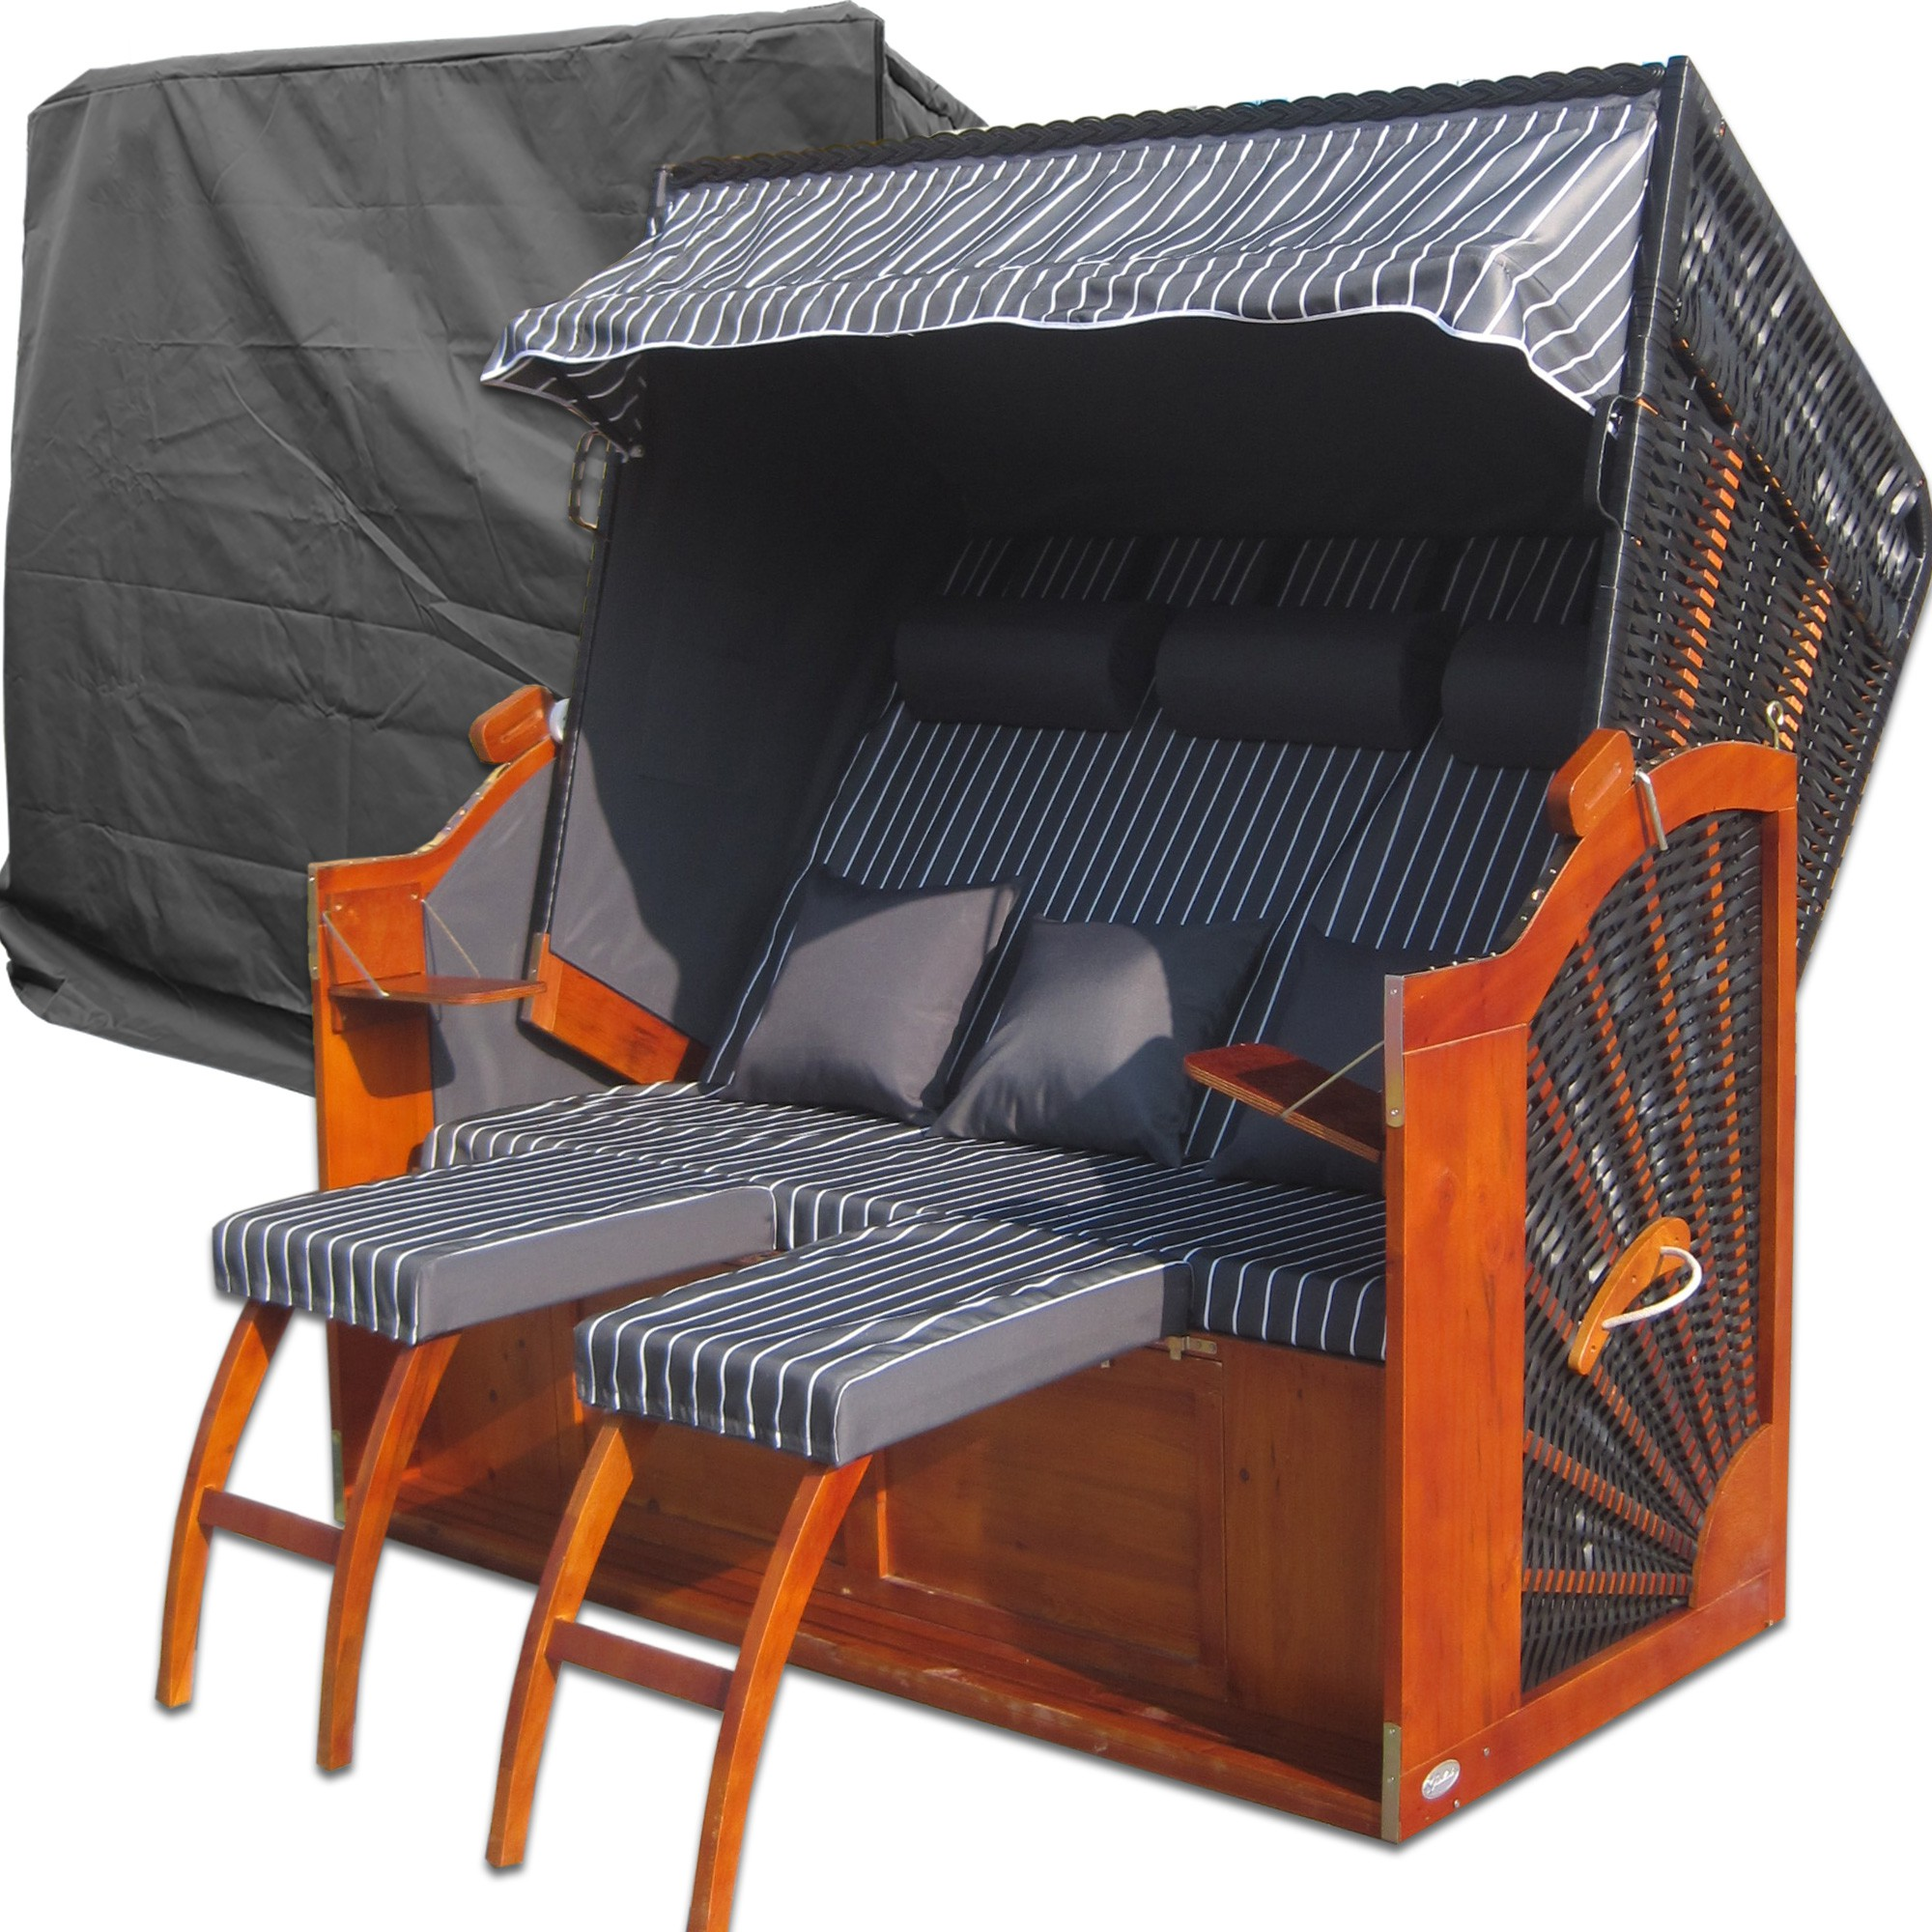 strandkorb r gen g nstig strandkorb xxl kaufen. Black Bedroom Furniture Sets. Home Design Ideas